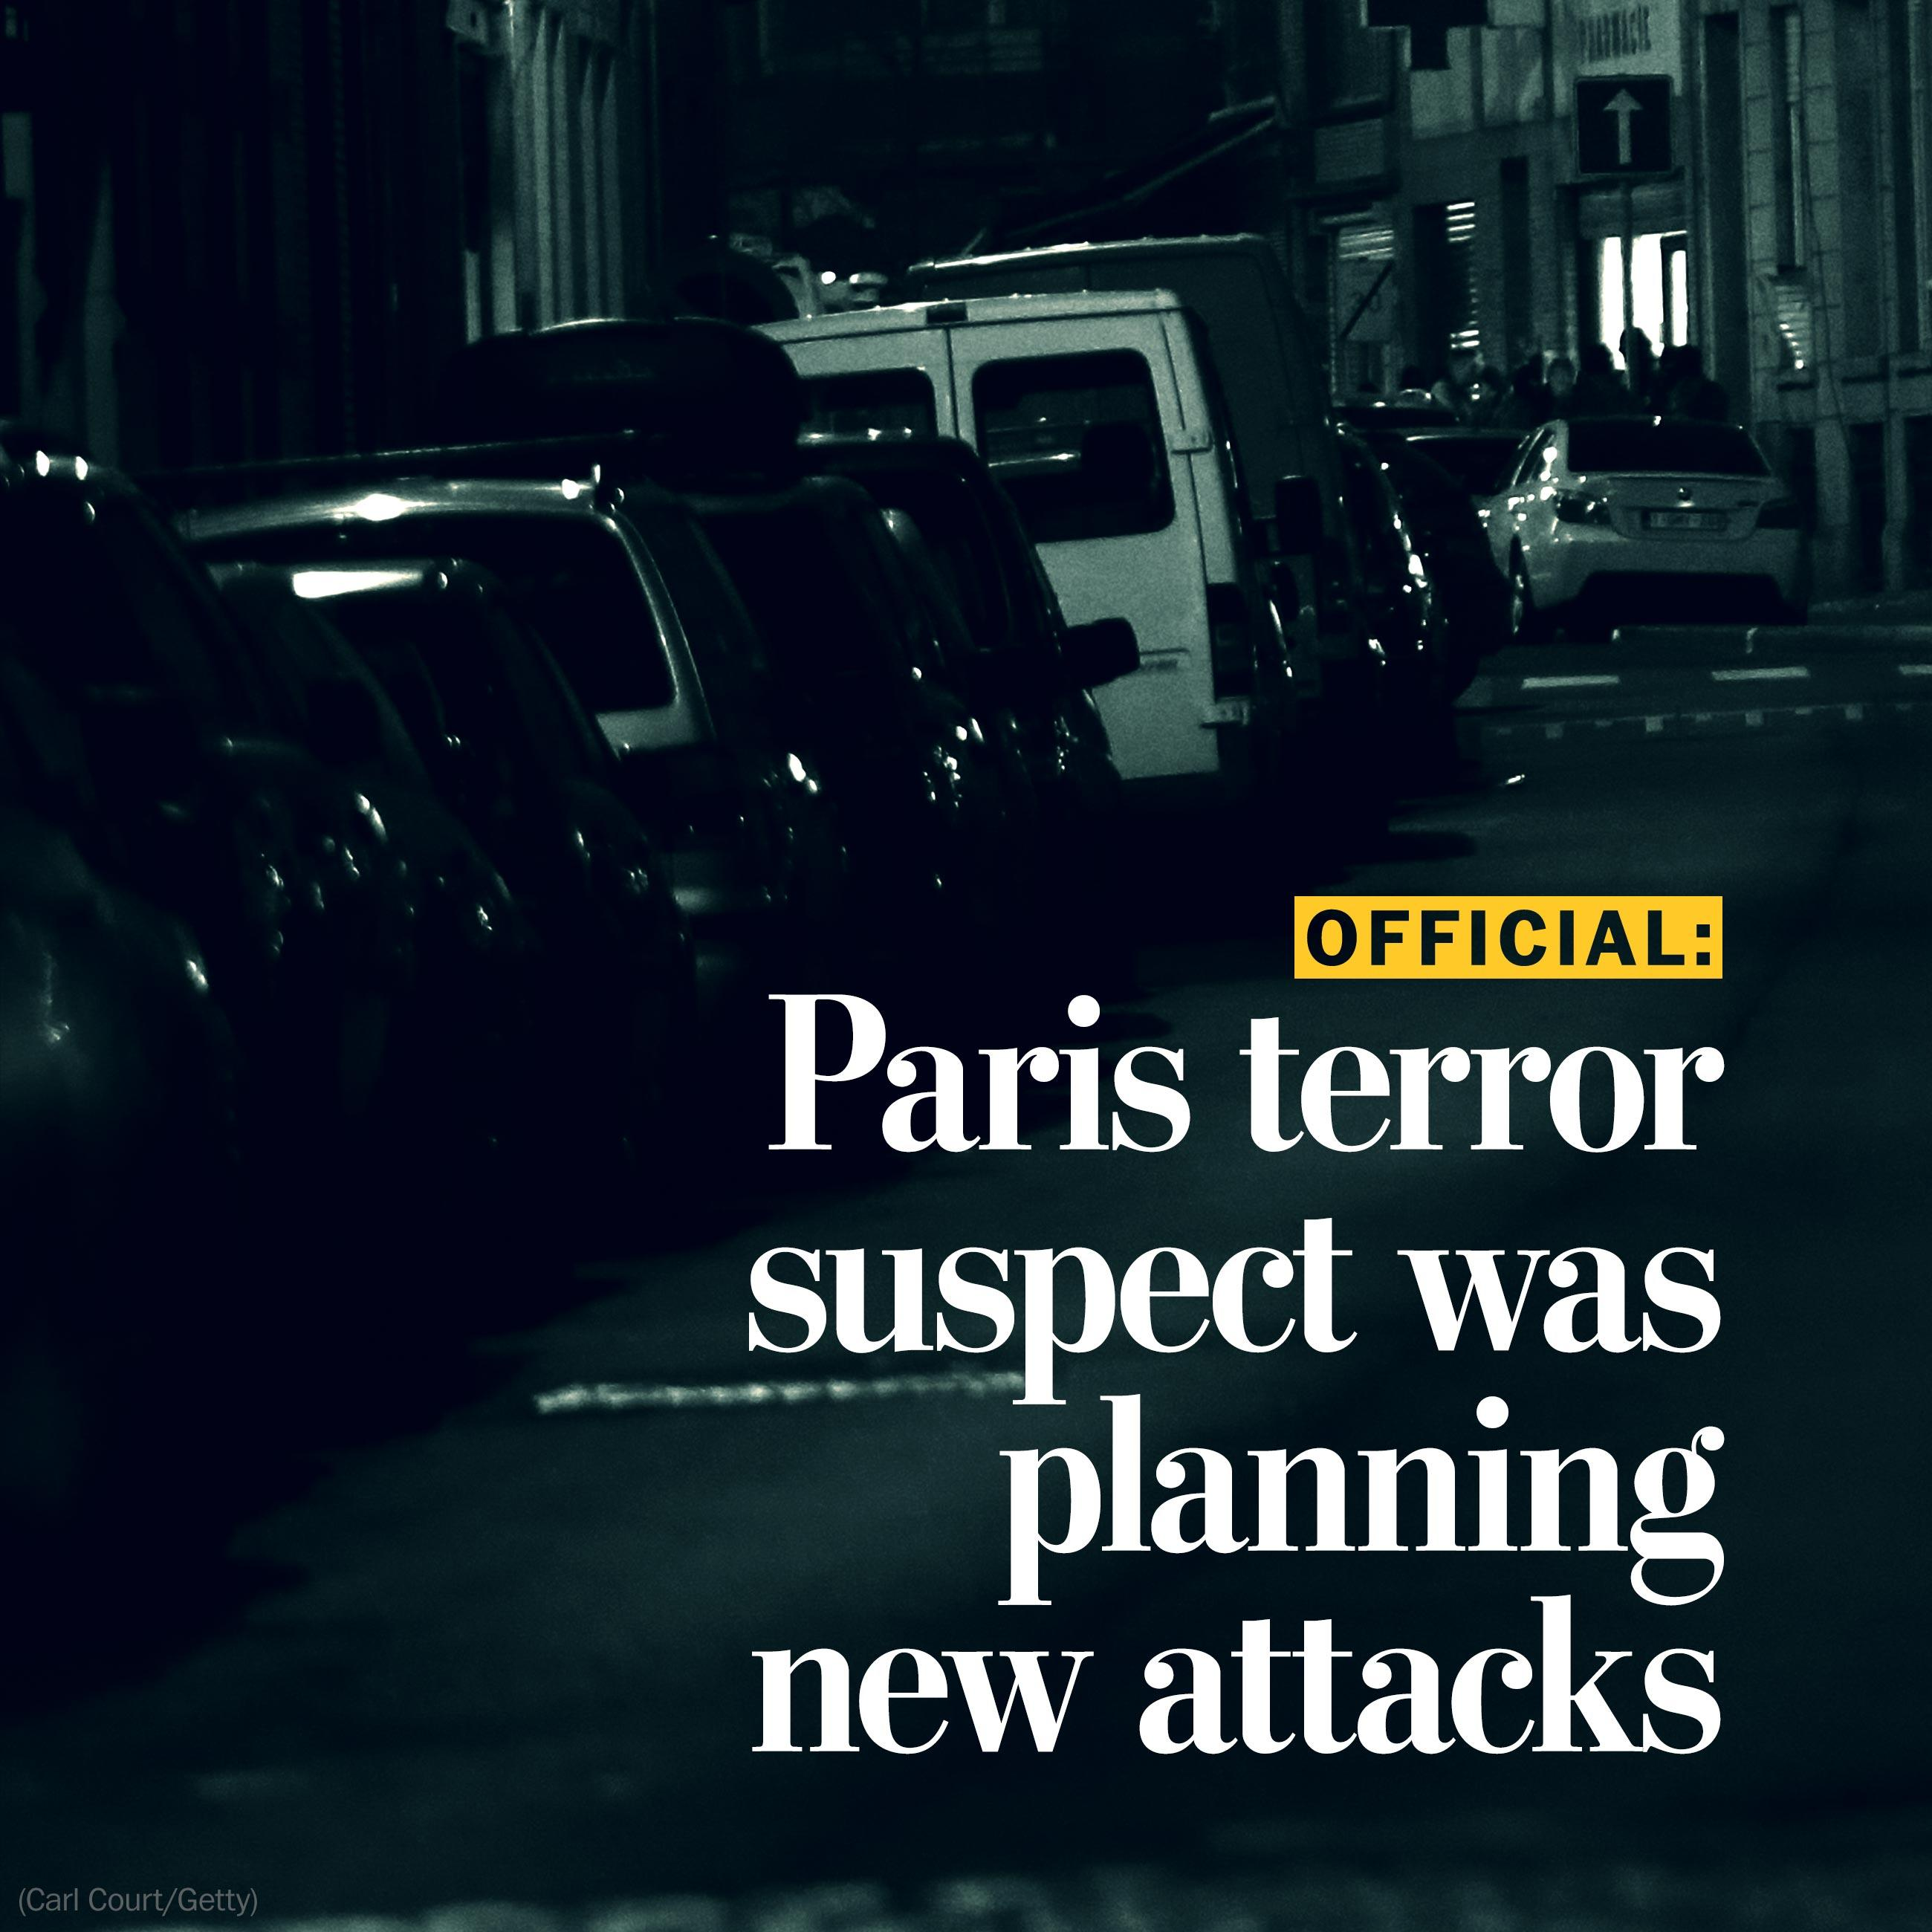 Paris terror suspect was planning new attacks, Belgian official says